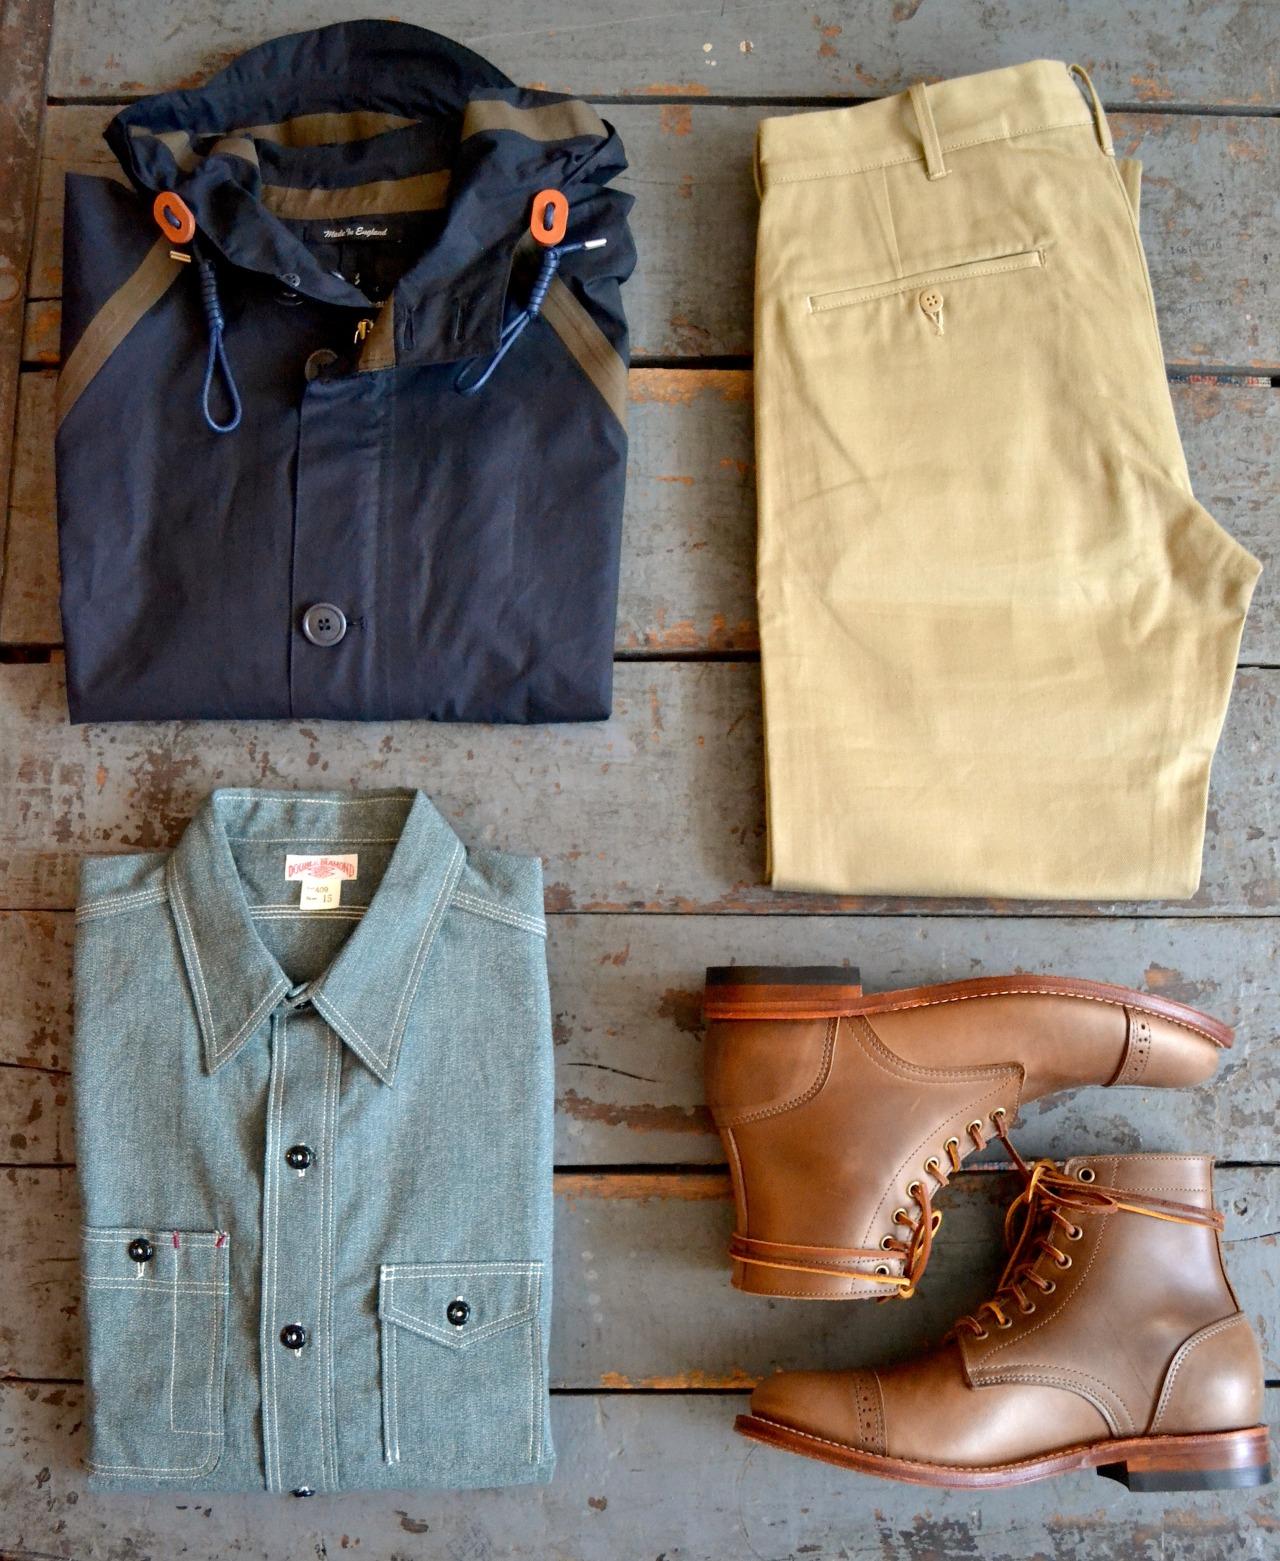 beatboxgoesthump: Nigel Cabourn - Ventile Aircraft Jacket The Real McCoys - Double Diamond Trousers The Real McCoys - Double Diamond Chambray Work Shirt Oak Street Bootmakers - Leather Sole Cap Toe Trench Boot